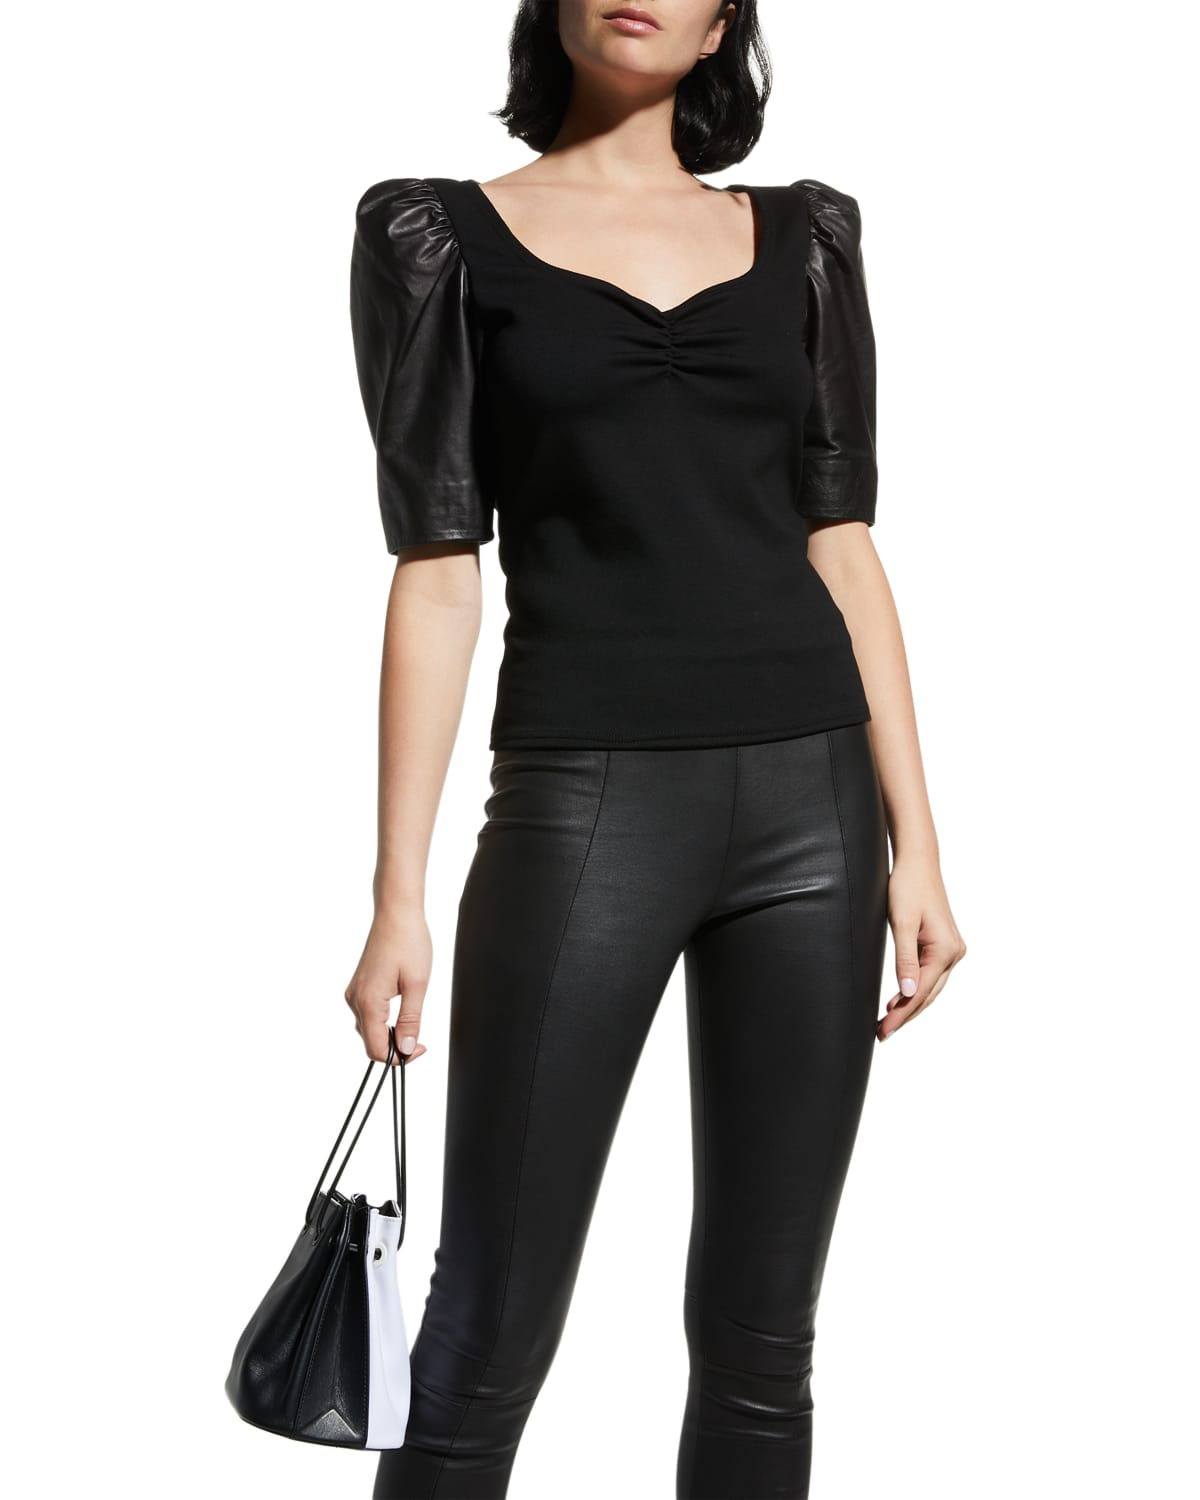 Kira Sweetheart Knit Top with Leather